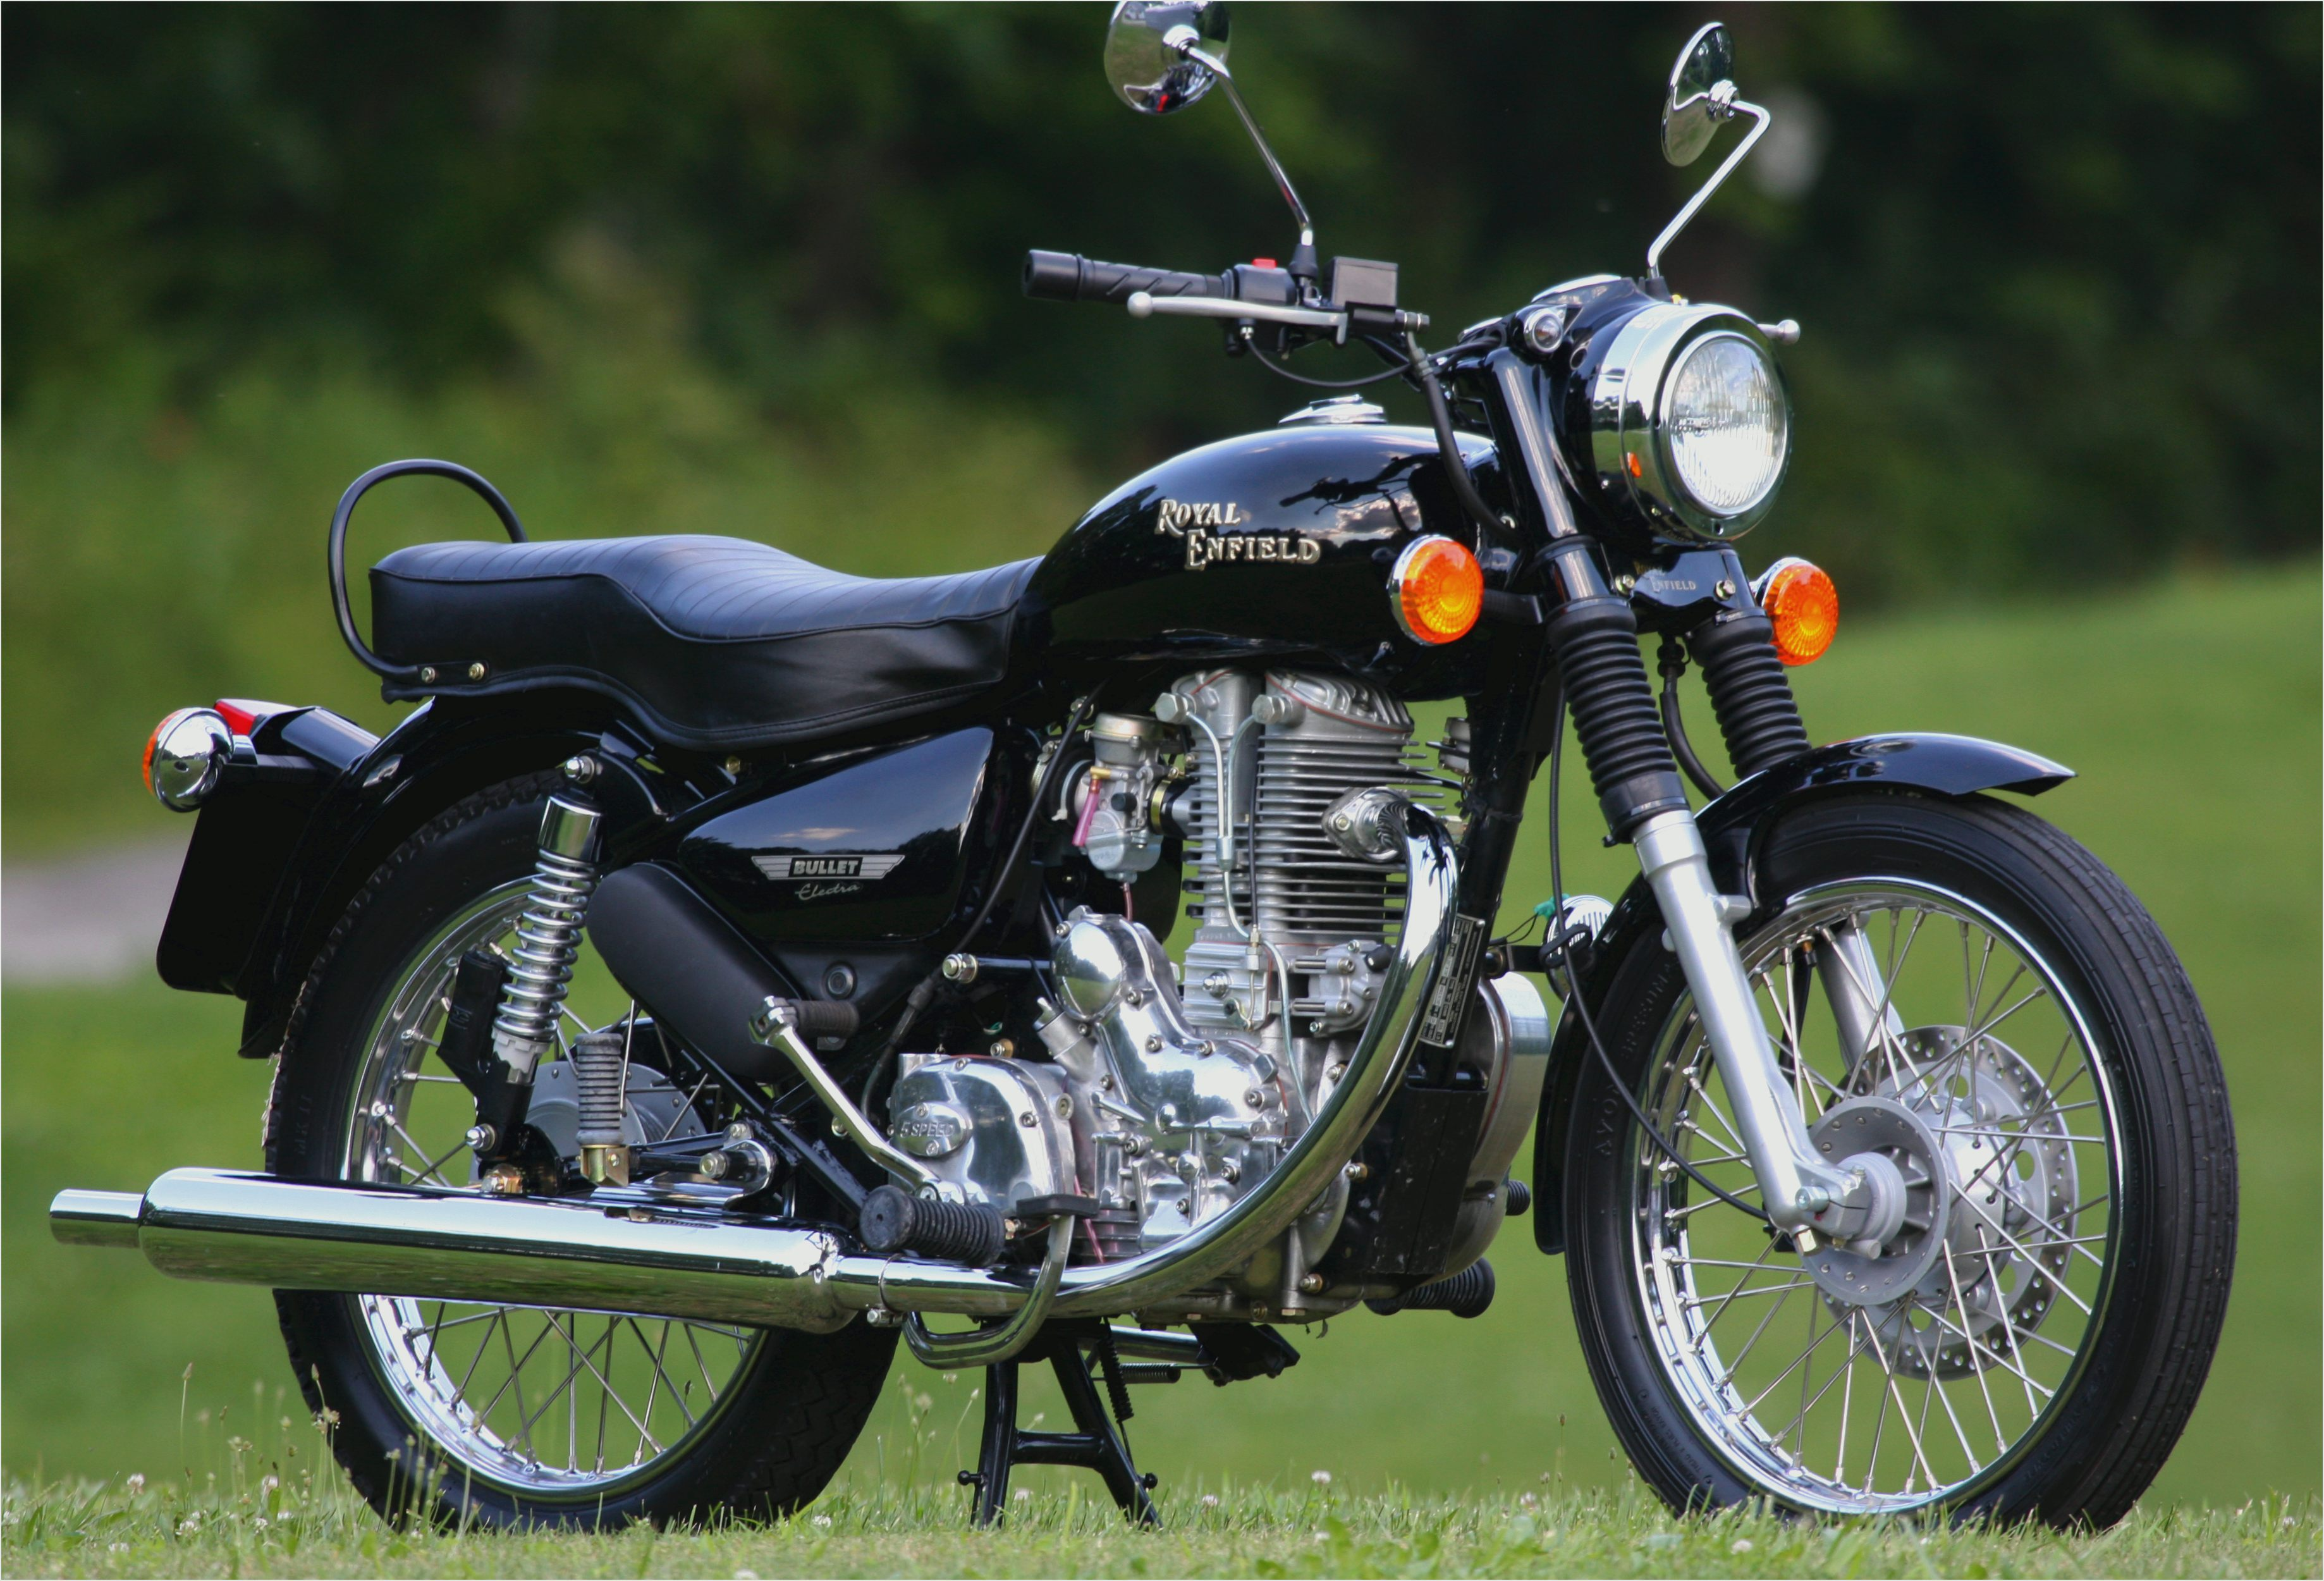 Royal Enfield Bullet 350 Classic 2007 images #123969